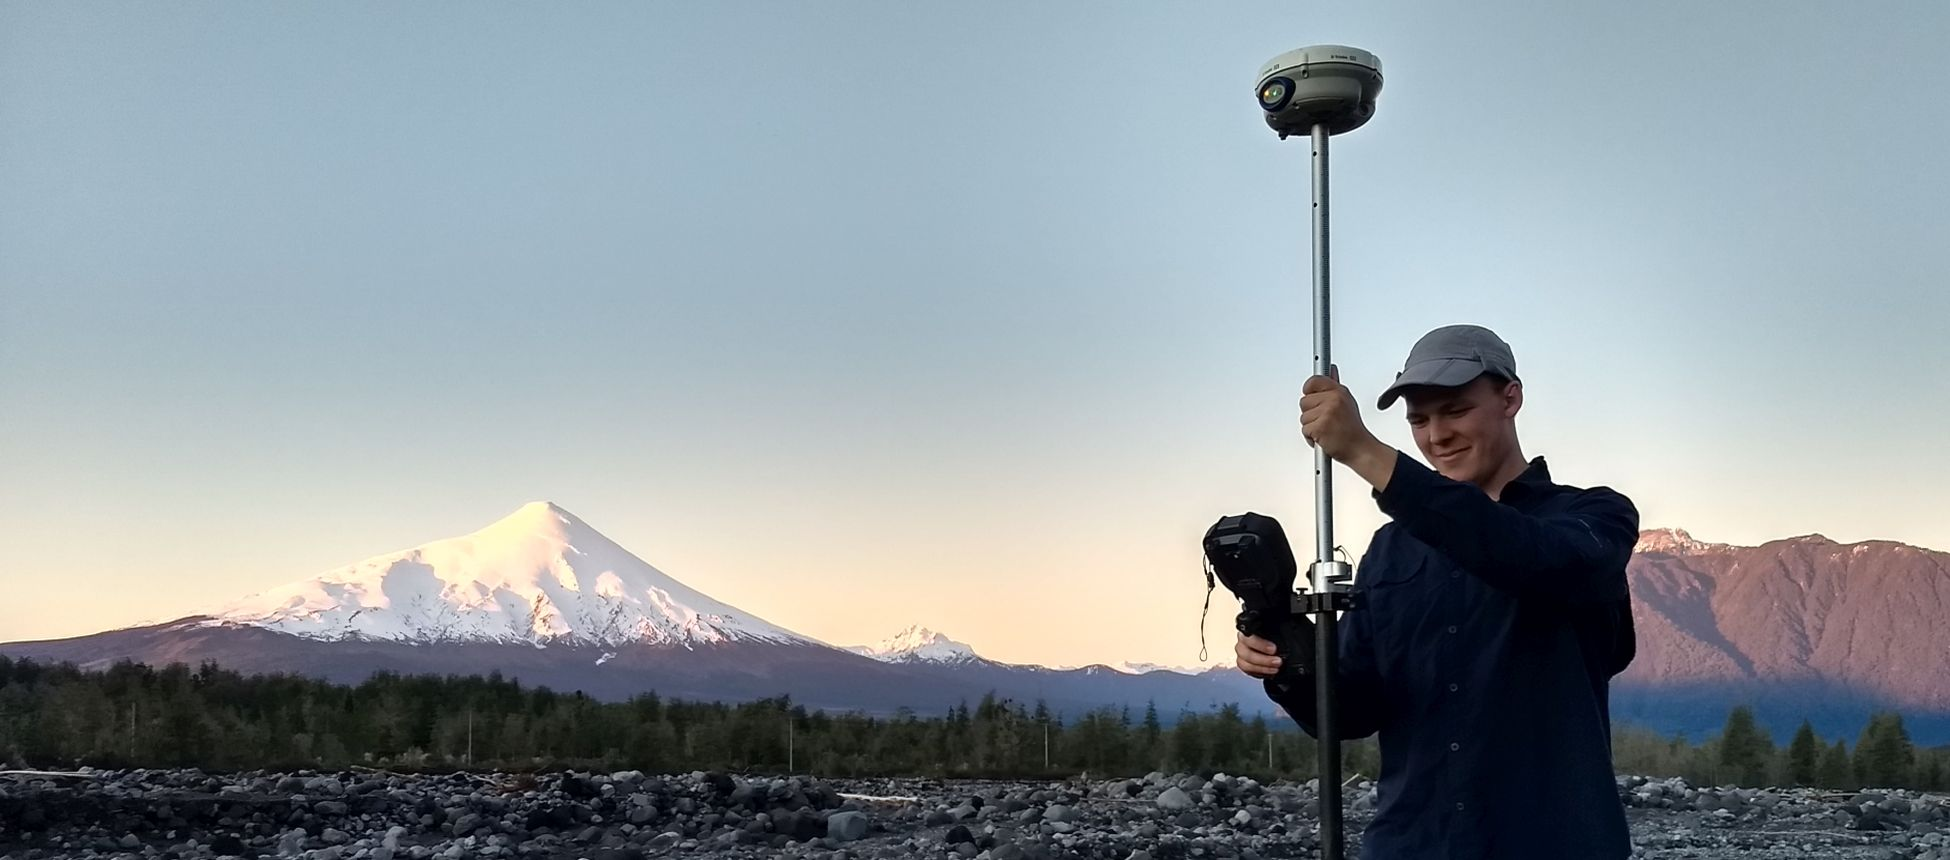 Student with equipment in front of a snow capped mountain